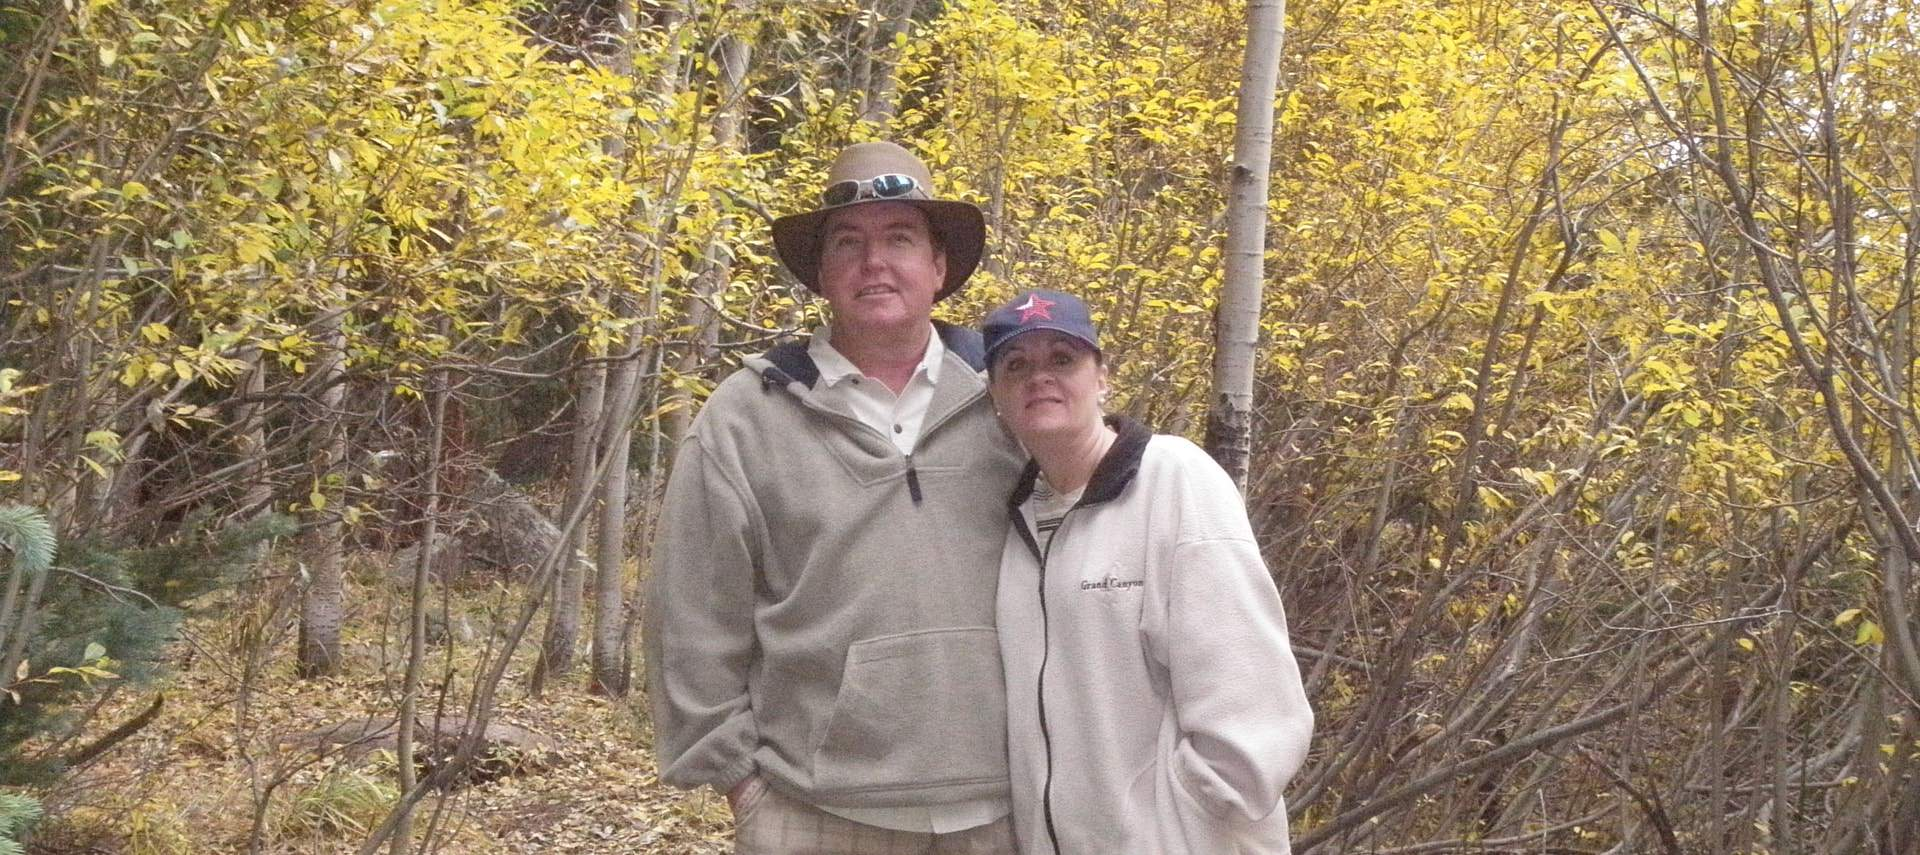 Two people hiking in the woods among trees with yellow leaves